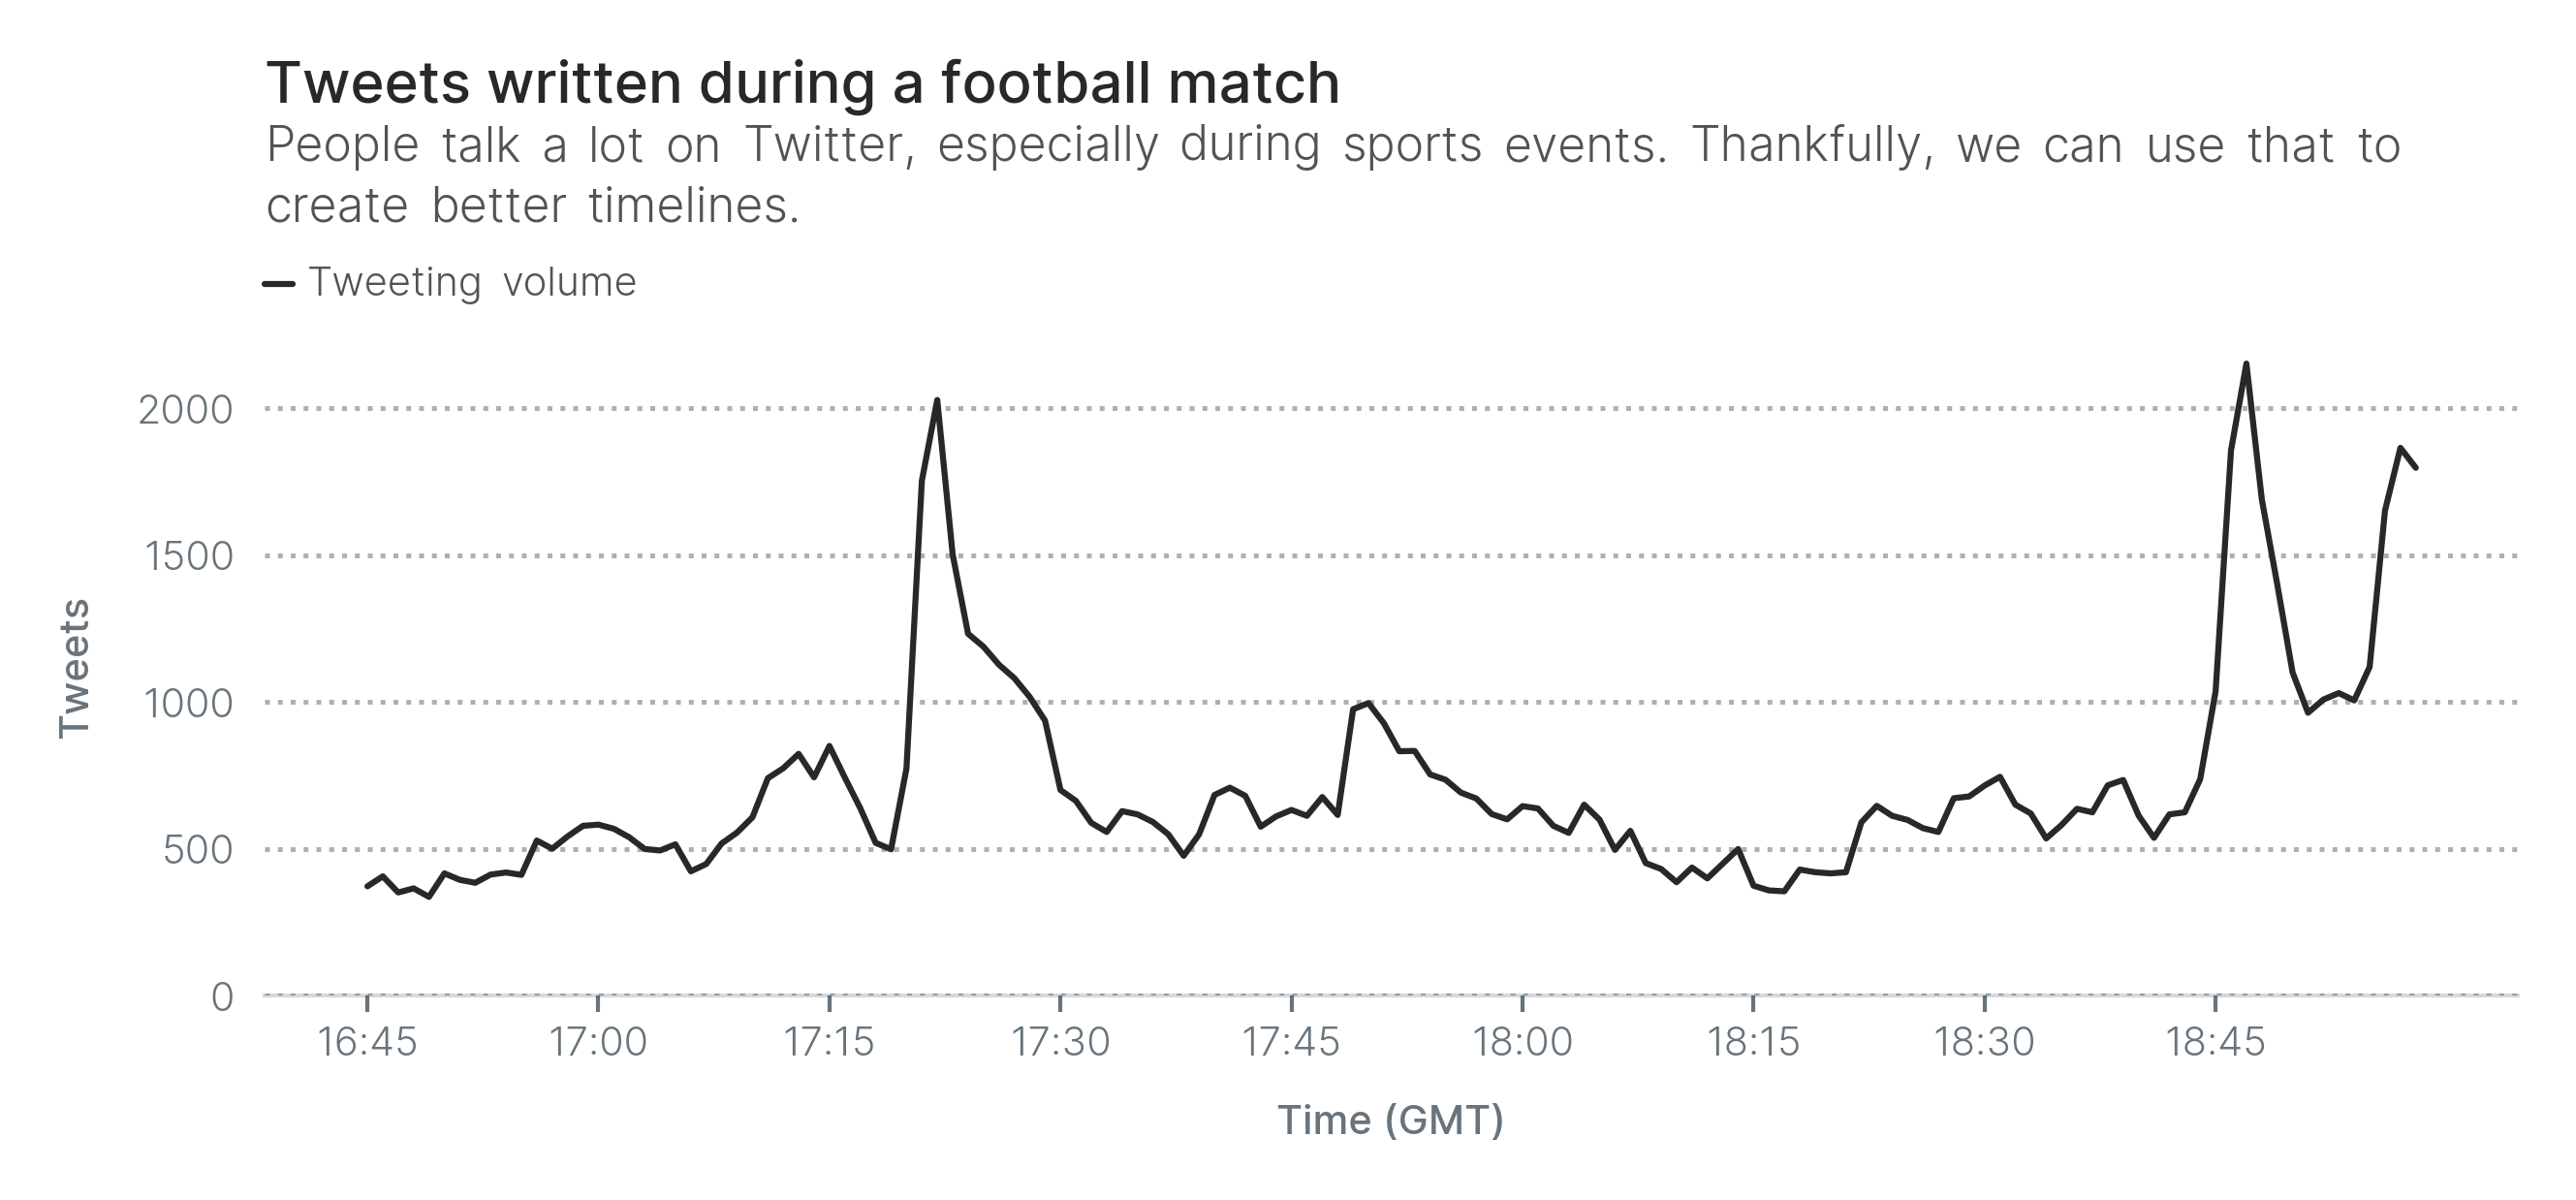 People talk a lot on Twitter, especially during sports events. Thankfully, we can use that to create better timelines.